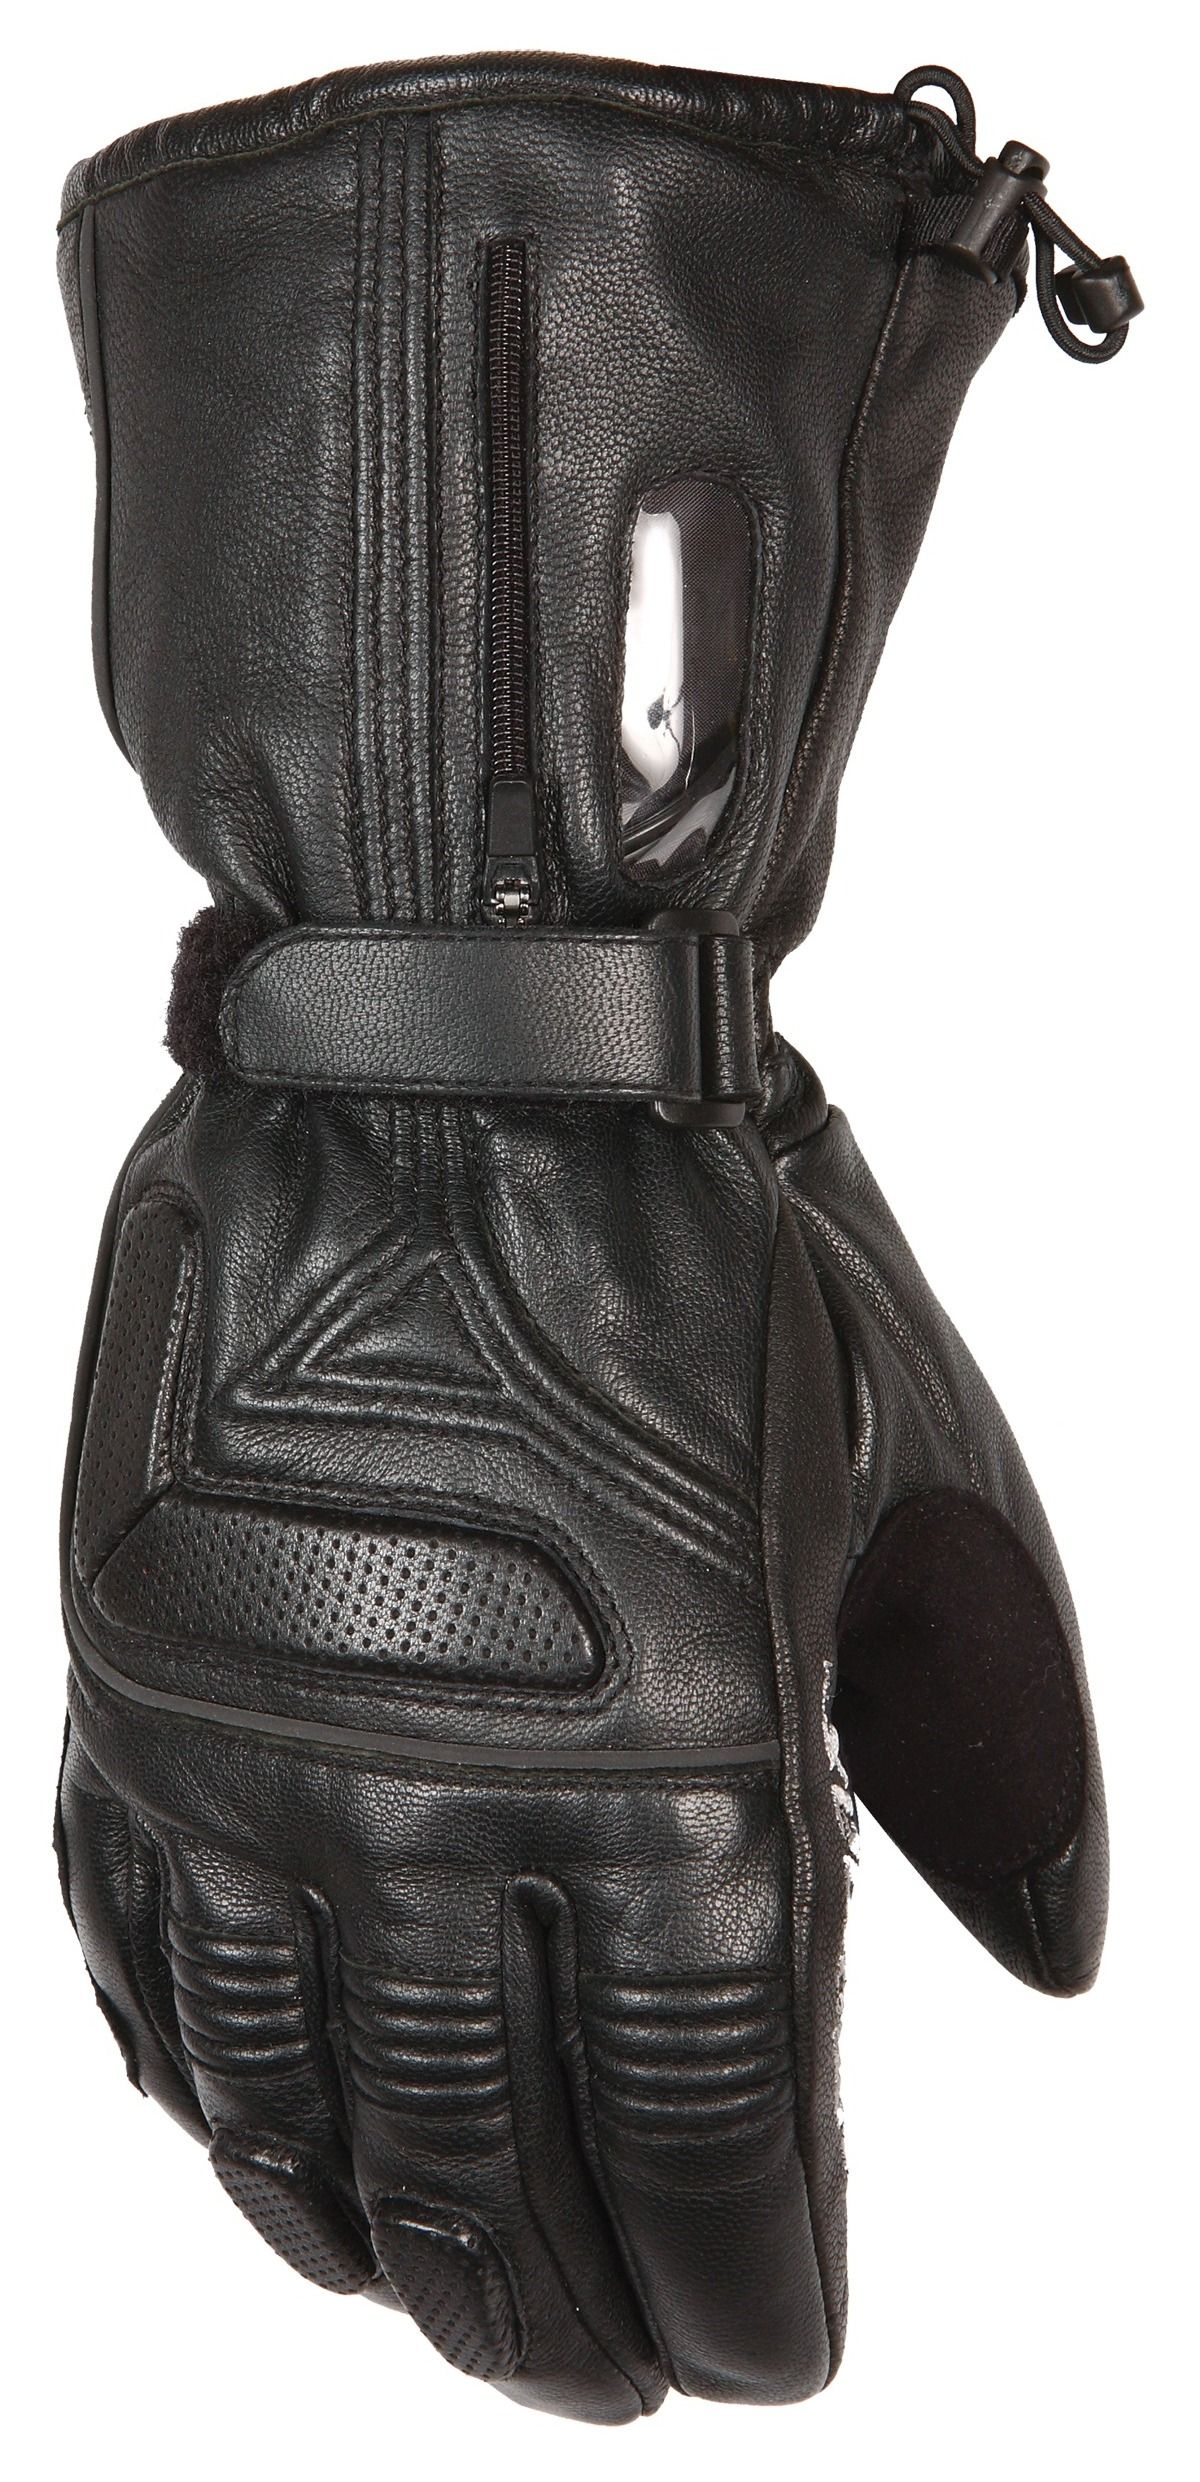 Insulated leather motorcycle gloves - As Winter Motorcycle Gloves They Work Reasonably Well Liner Moves Around Freely Inside The Outer